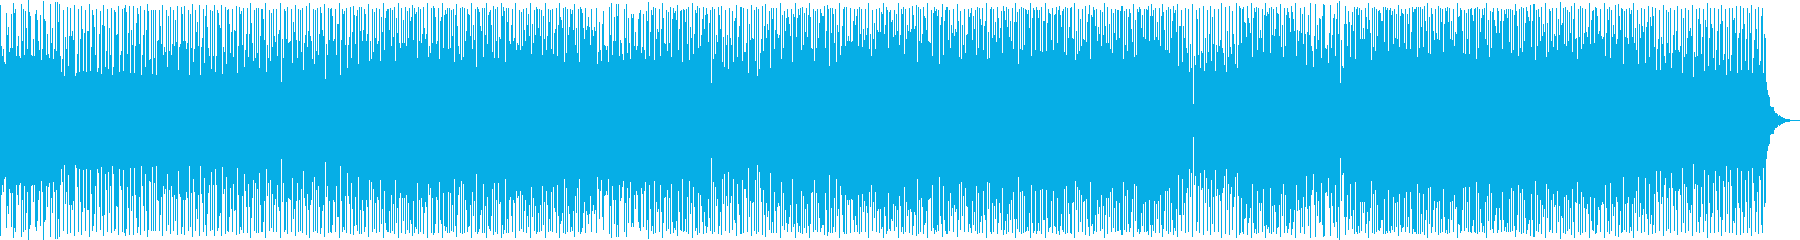 Cool techno music's reproduced waveform